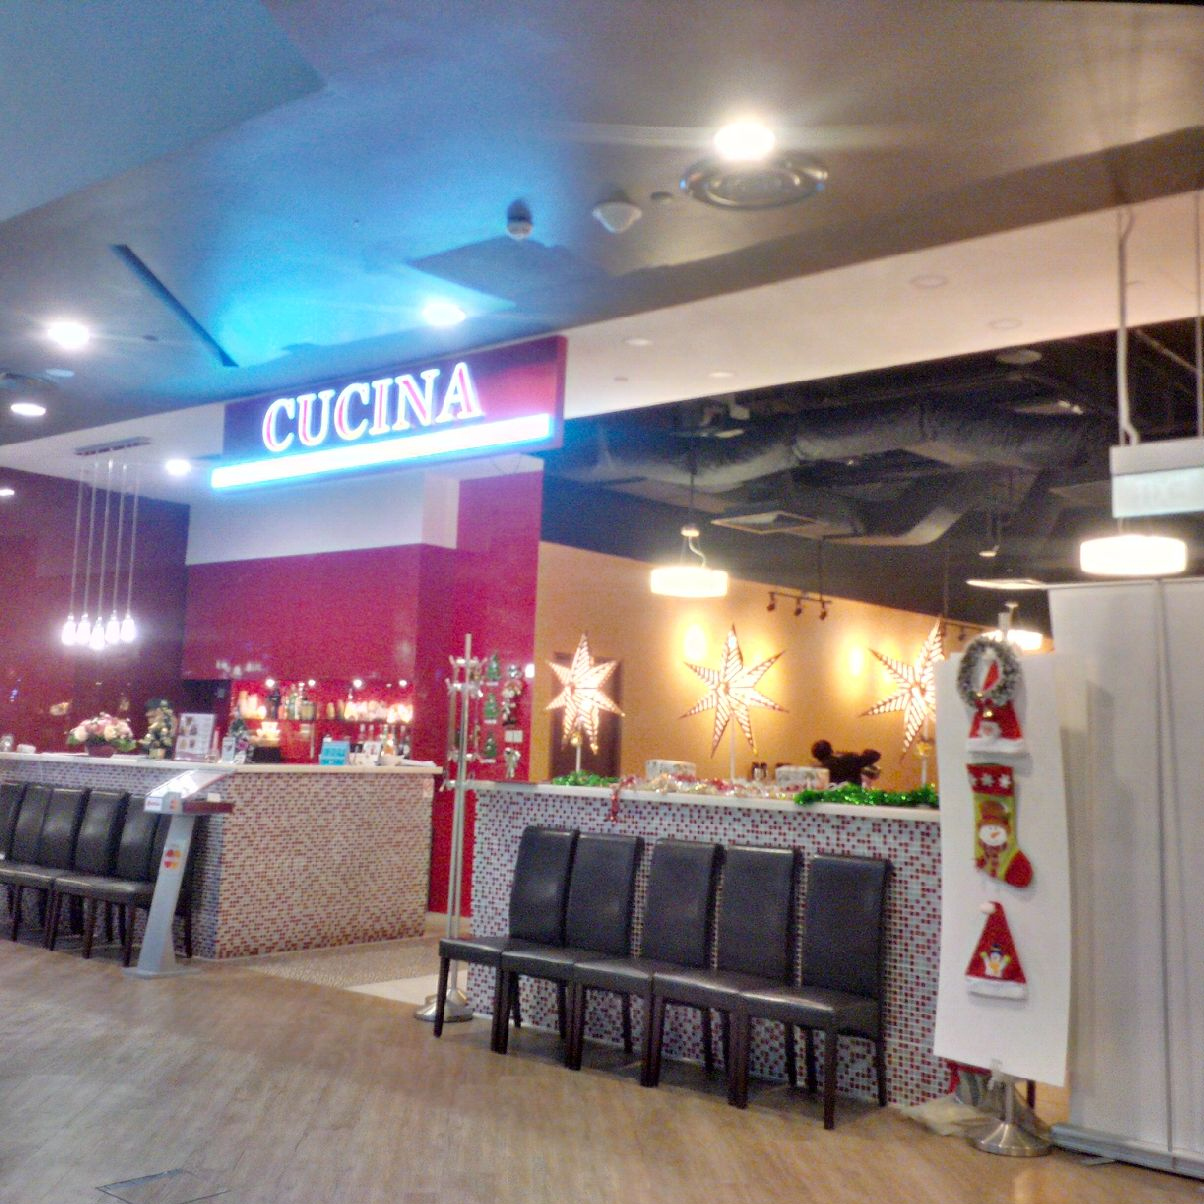 Cucina Italian Restaurant Halal Thearcticstar S Tales Drinks Buffet And Dinner At Cucina